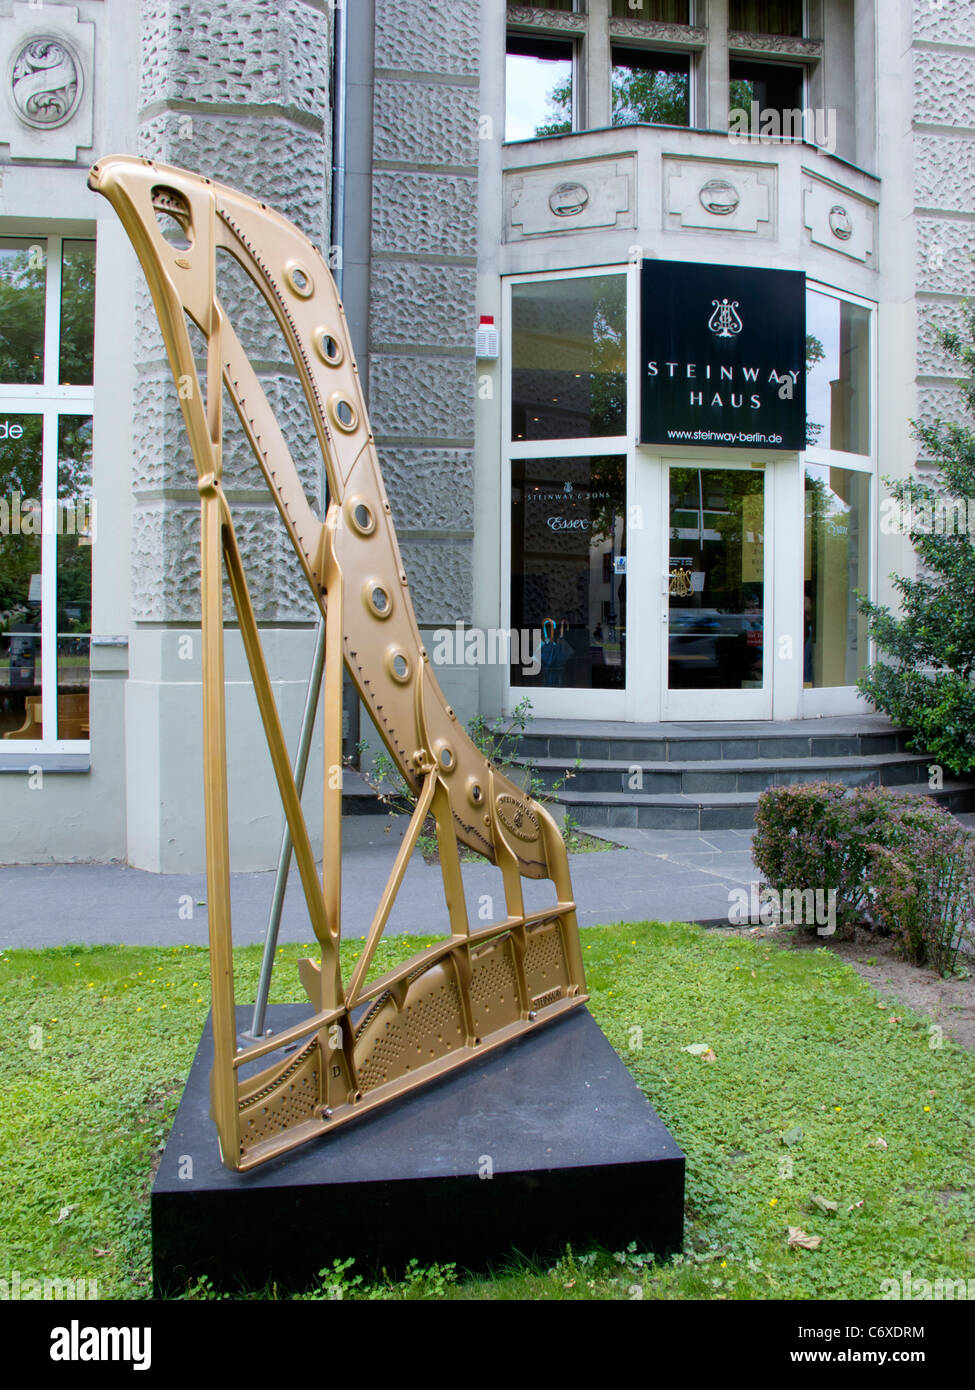 Exterior of Steinway Haus piano shop in Berlin Germany - Stock Image